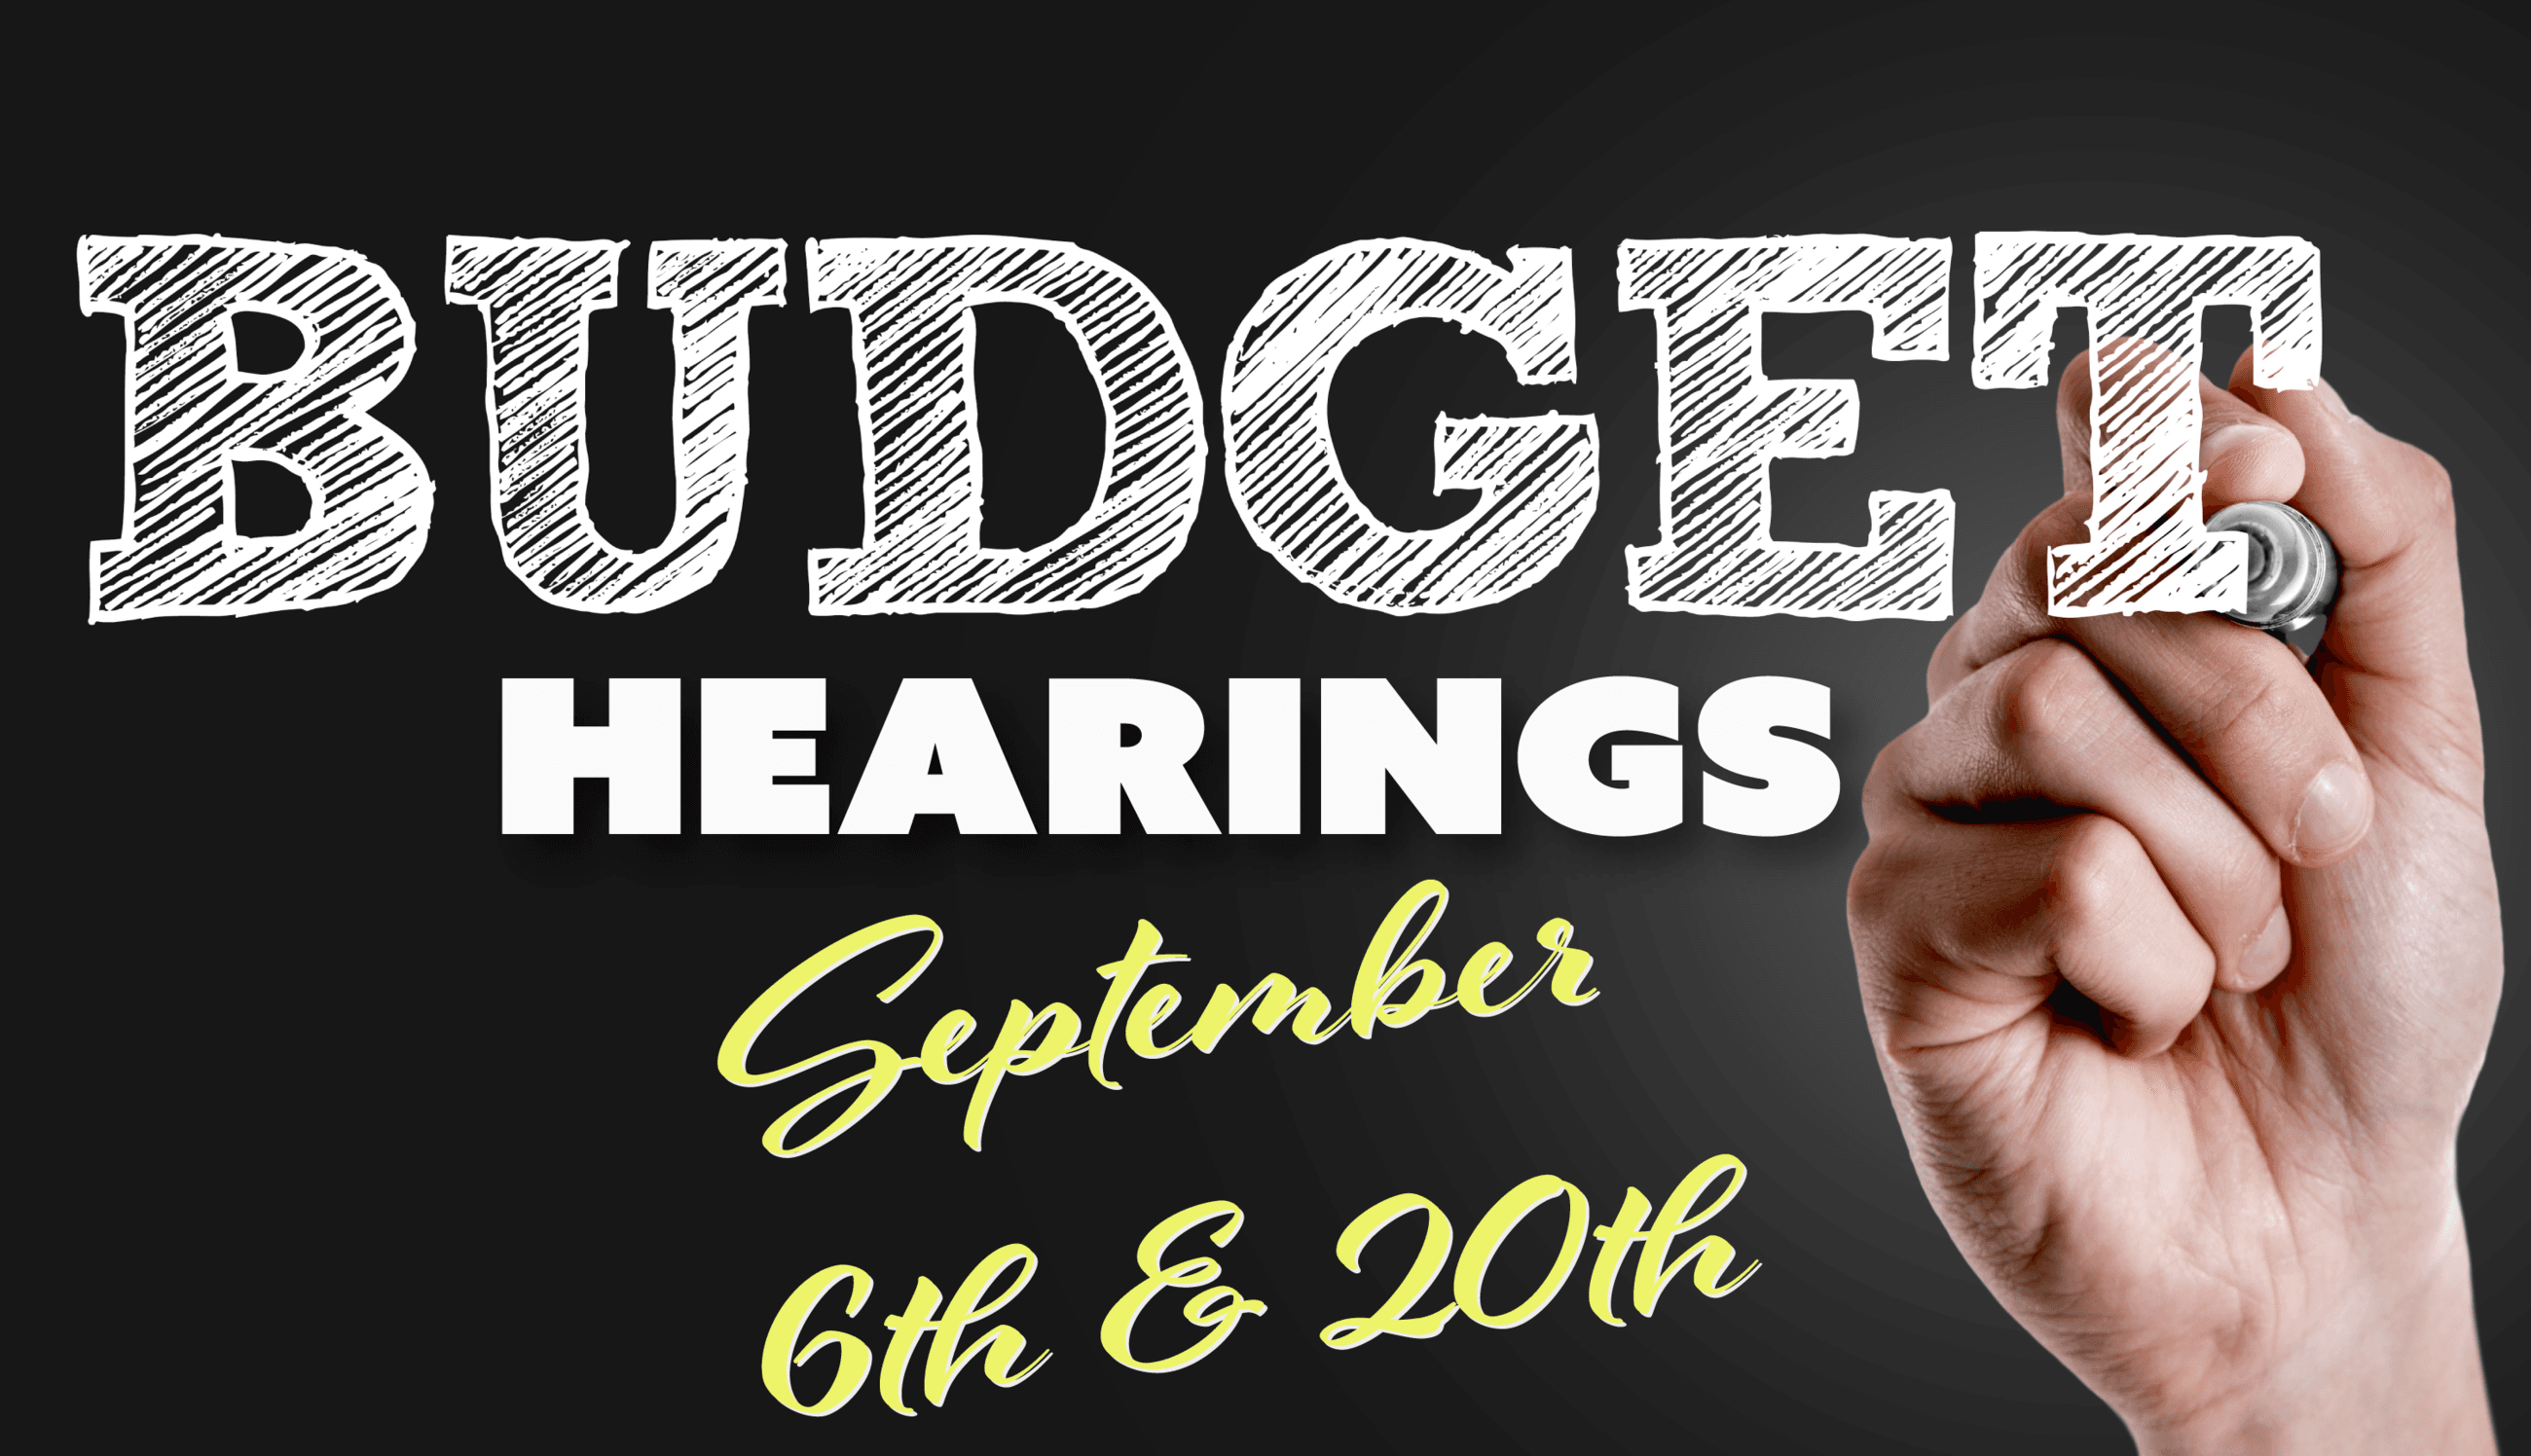 Budget Hearings September 6th and 20th